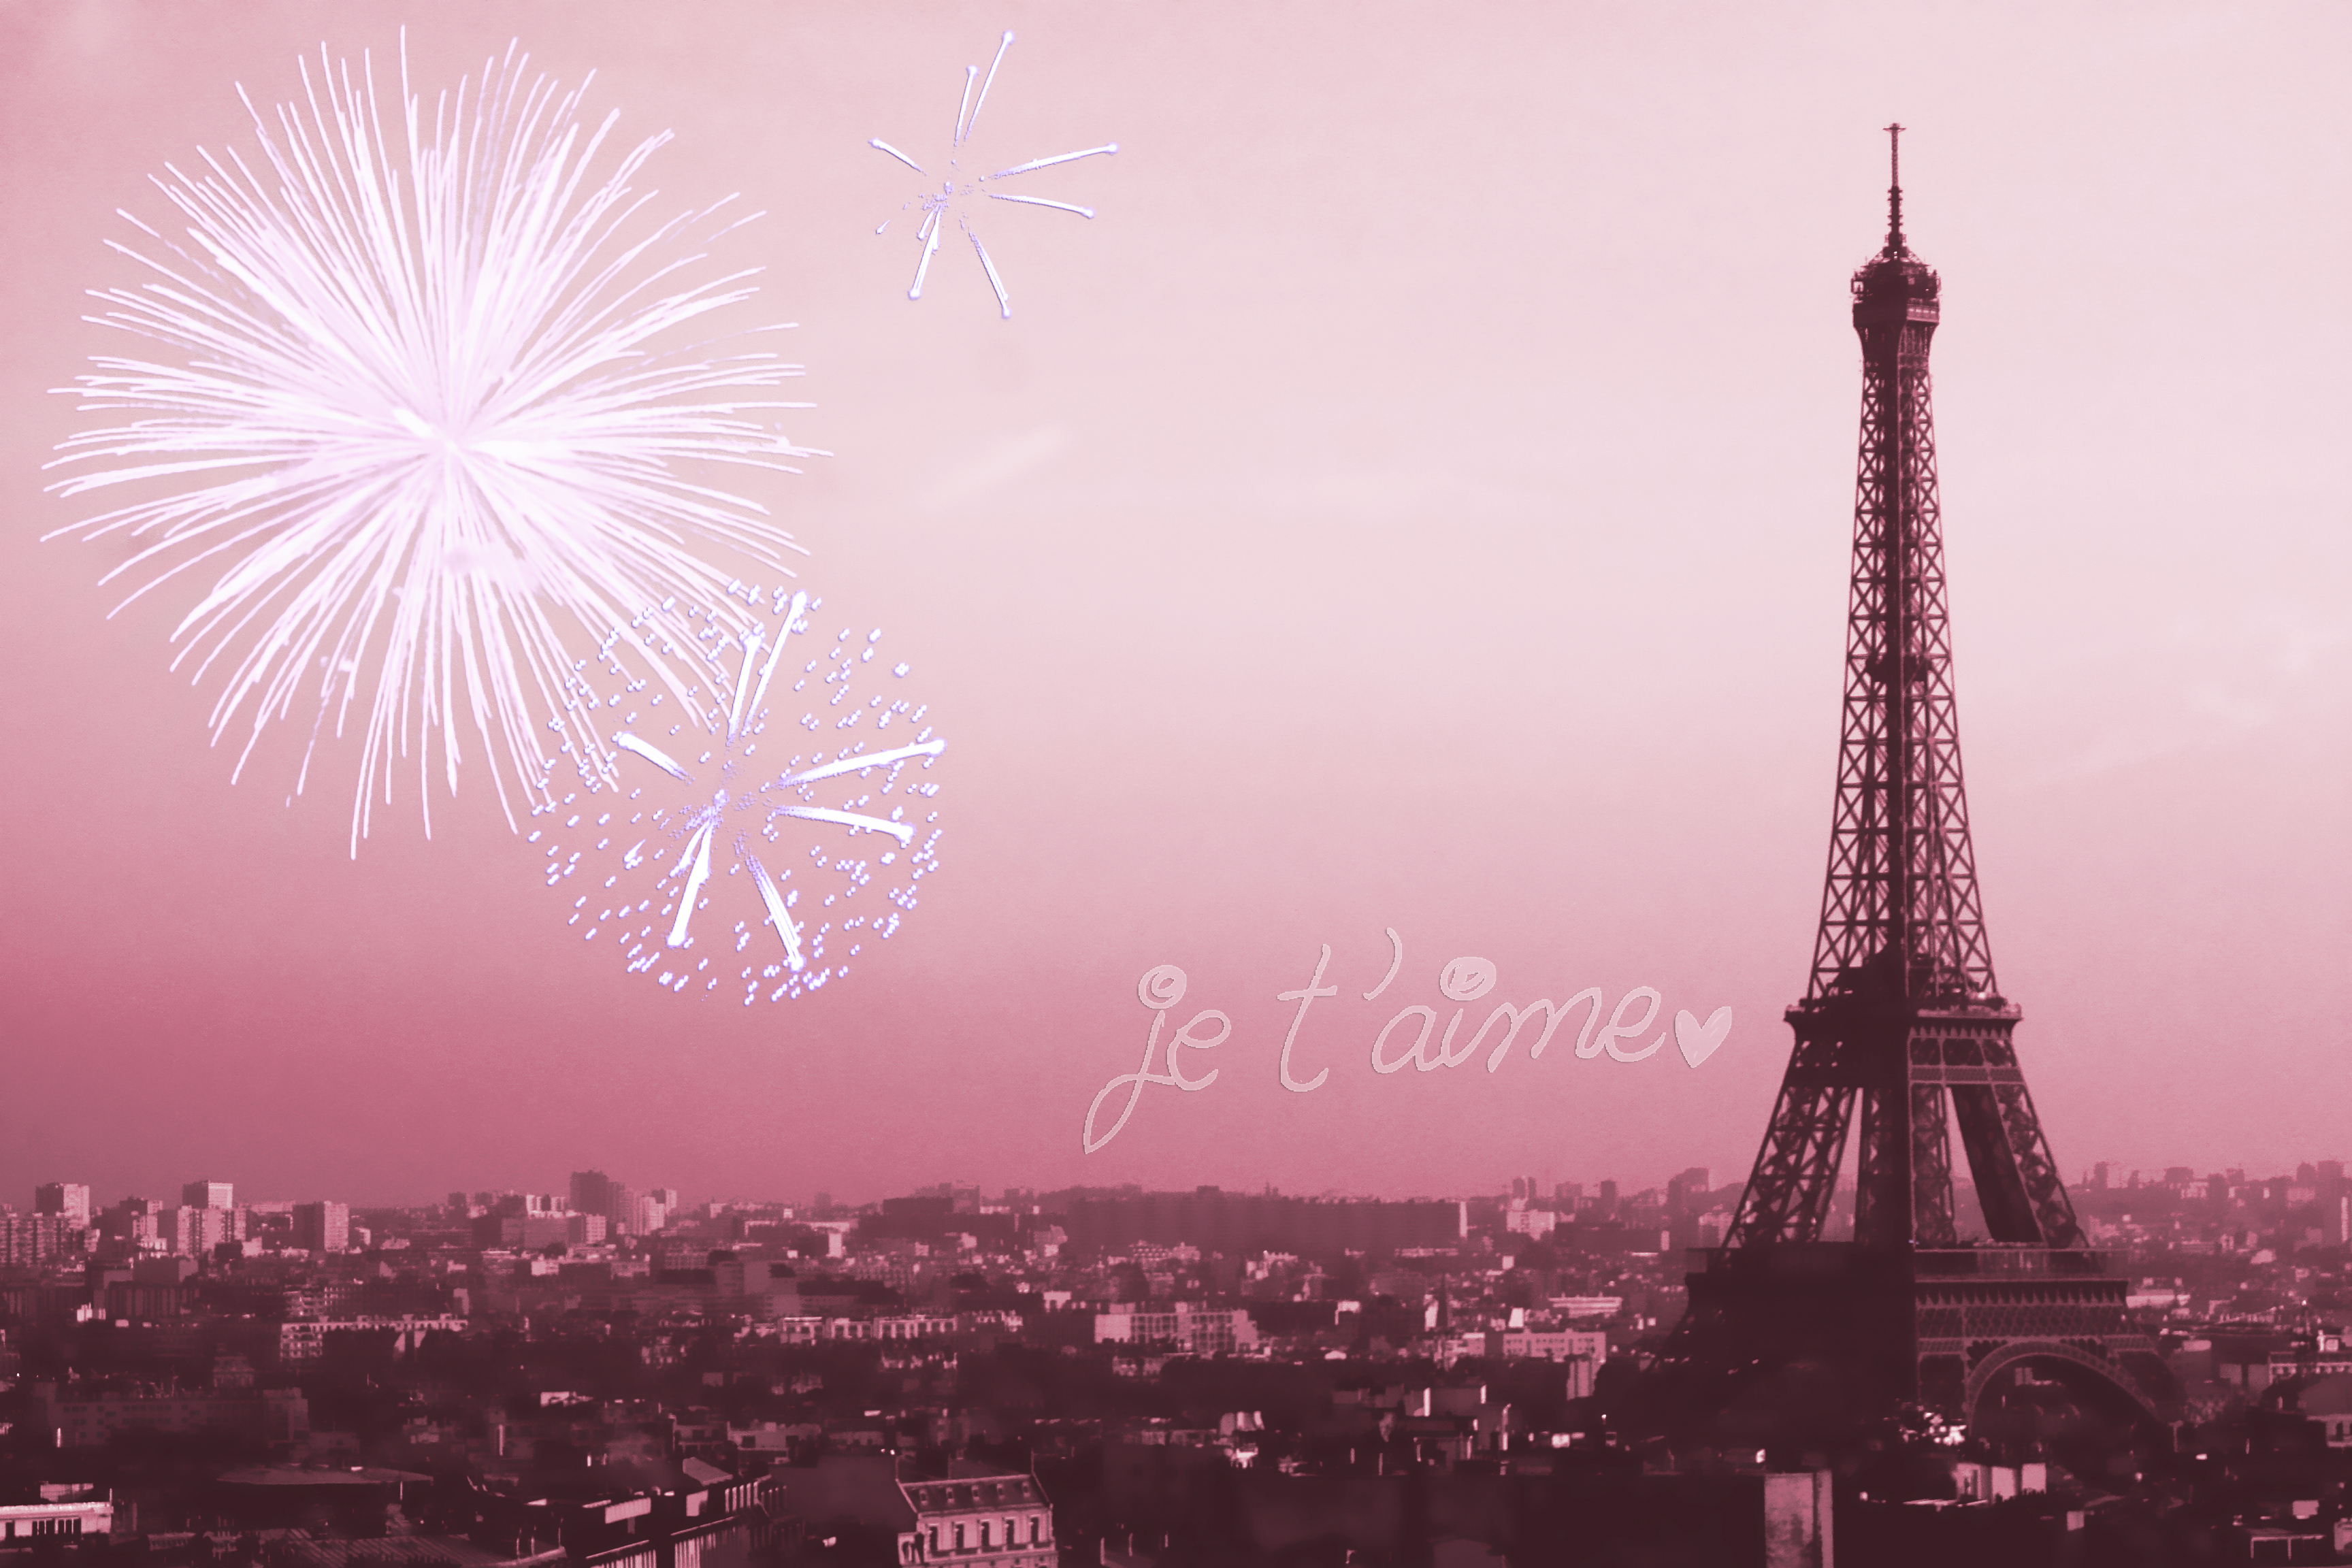 Girly eiffel tower wallpaper wallpapersafari - Paris eiffel tower desktop wallpaper ...